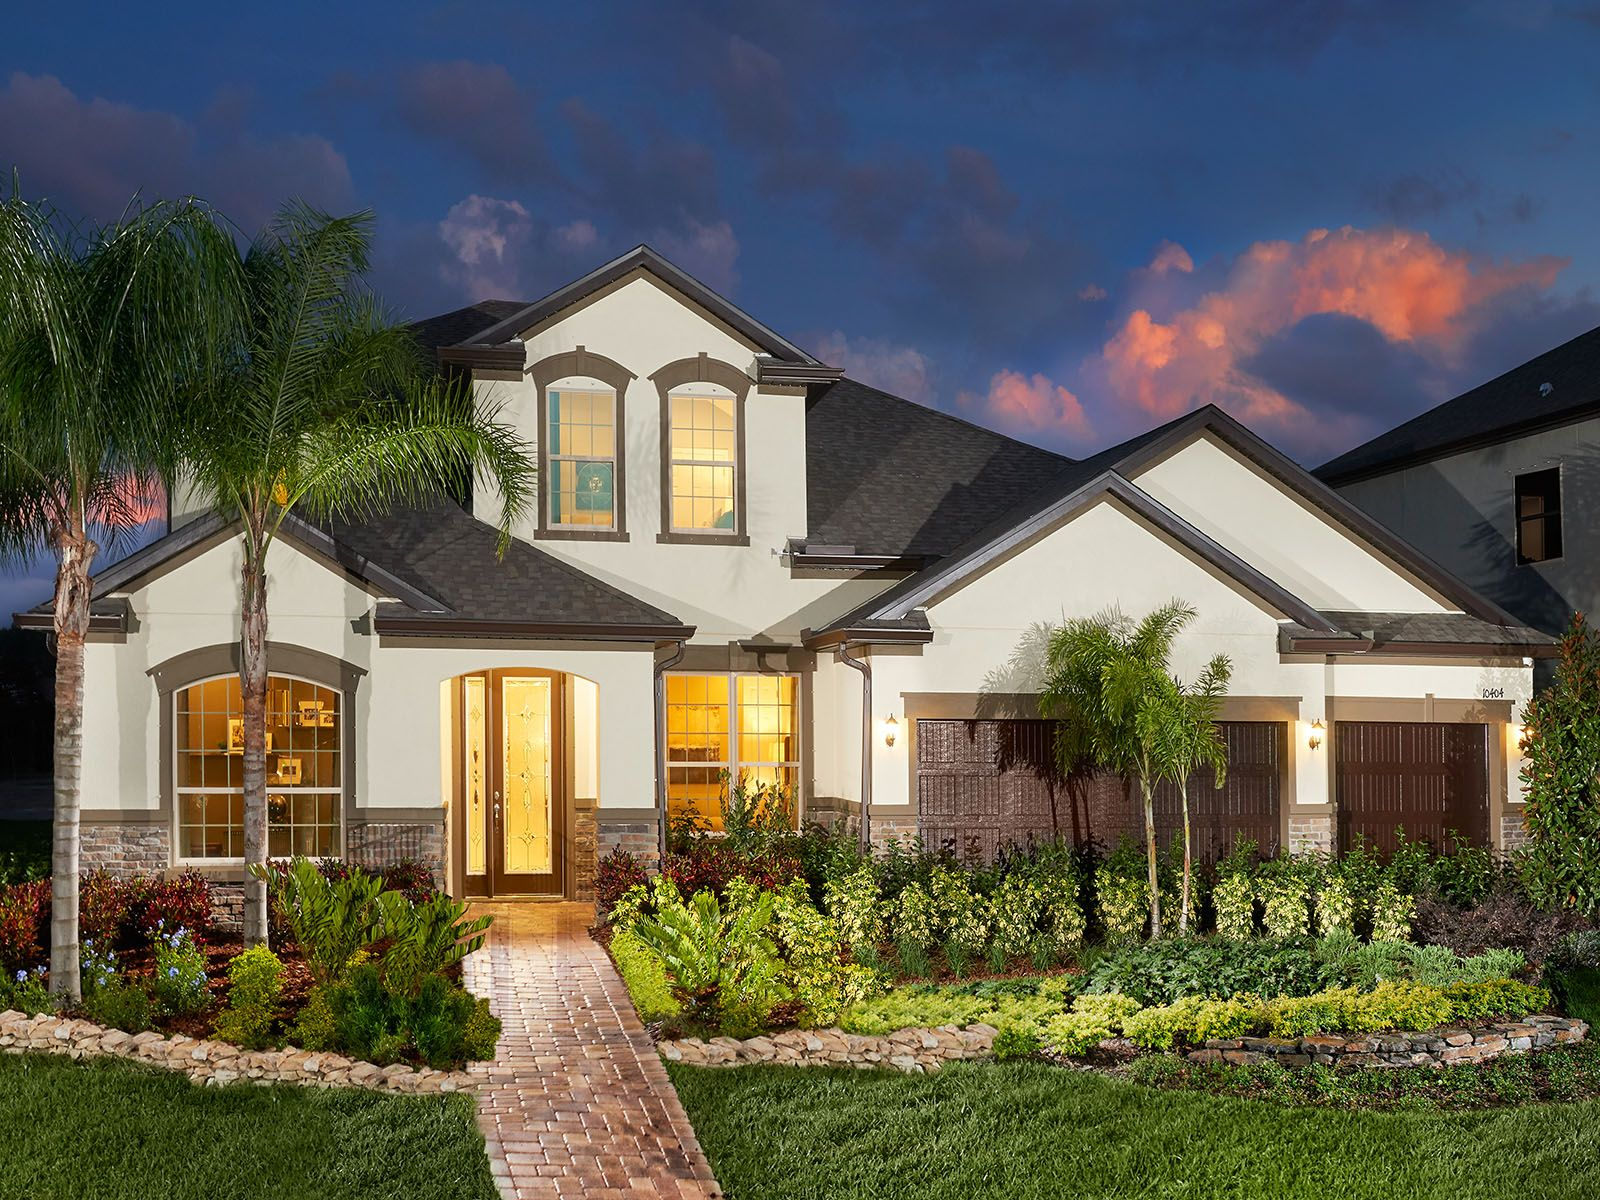 New Homes Mariposa Riverview